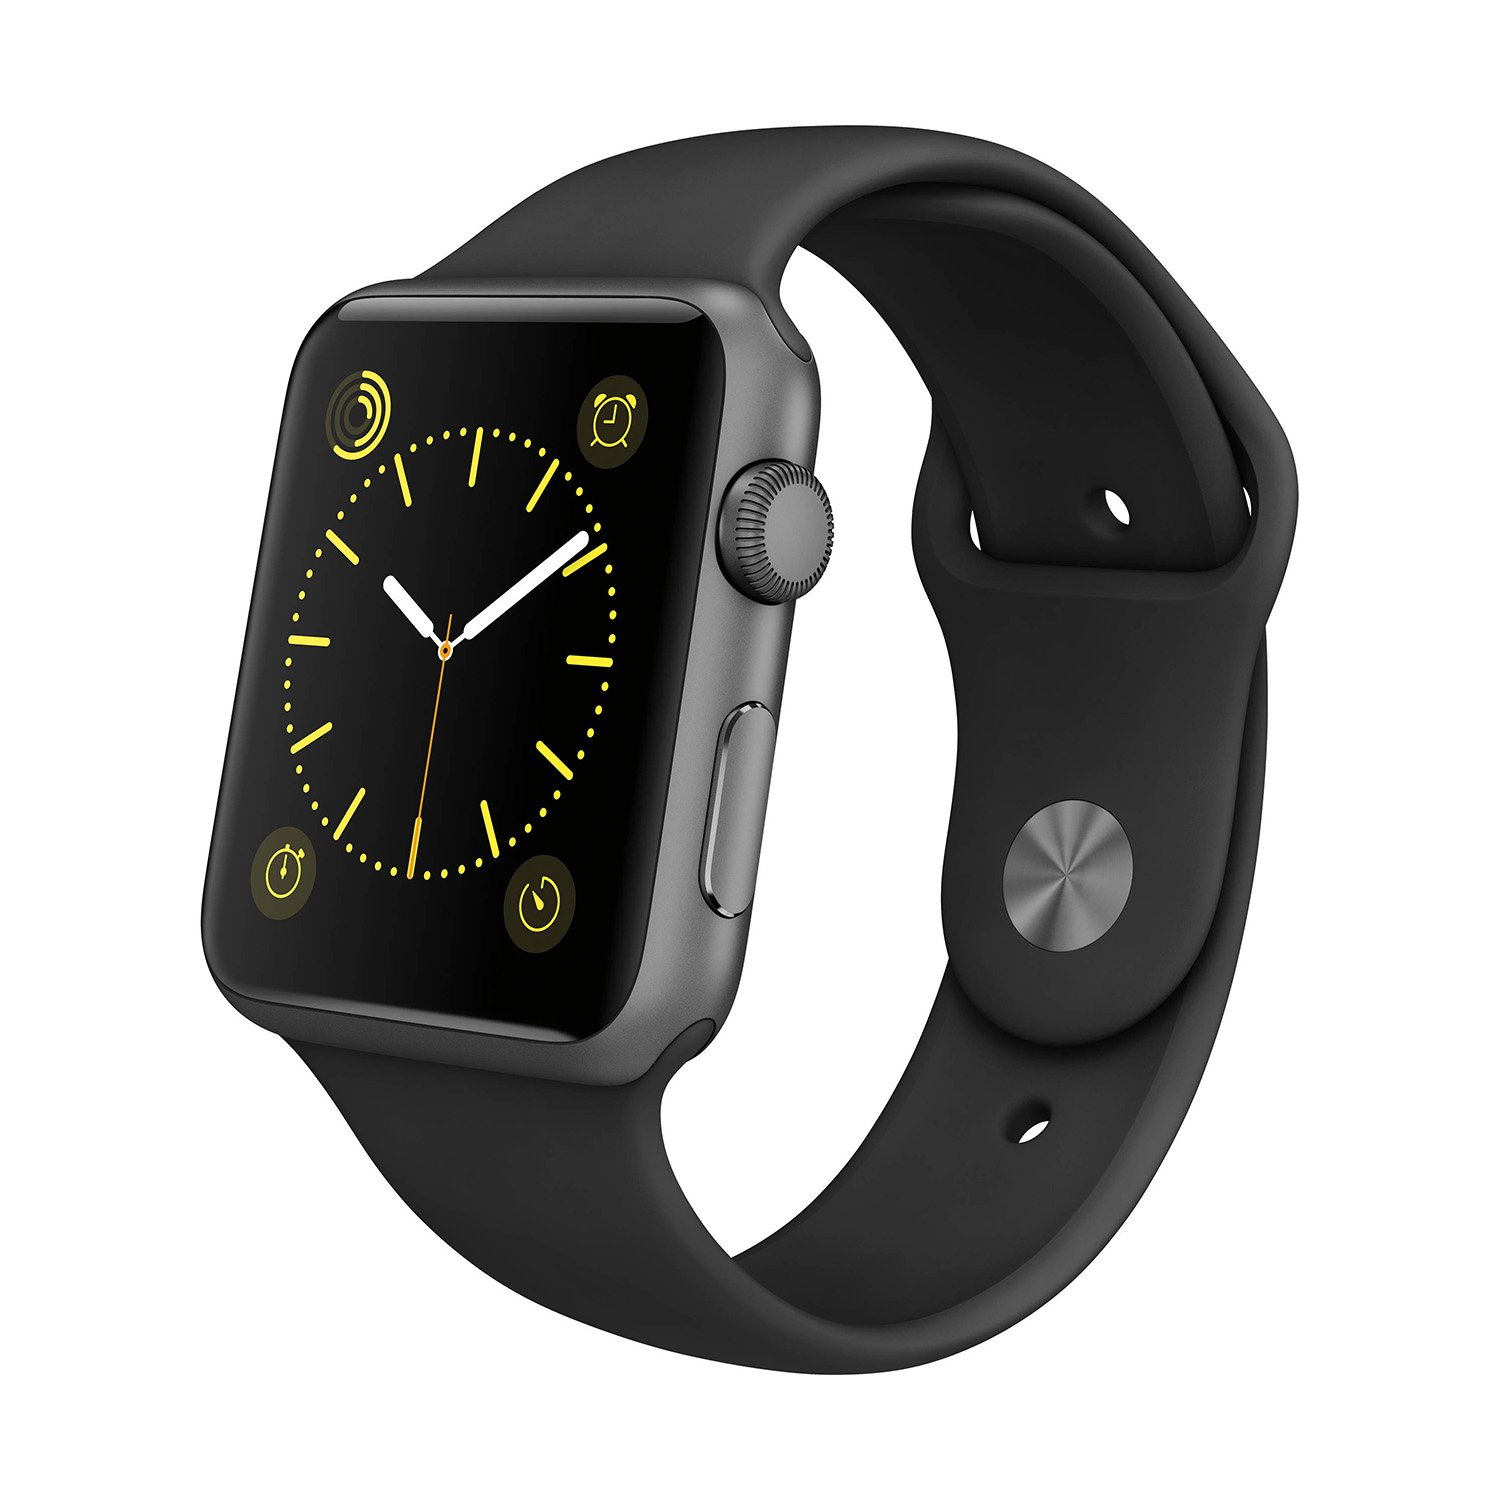 Apple Watch Sport 38mm with Space Gray Aluminum Case and Black Sport Band - MJ2X2LLA (Renewed)